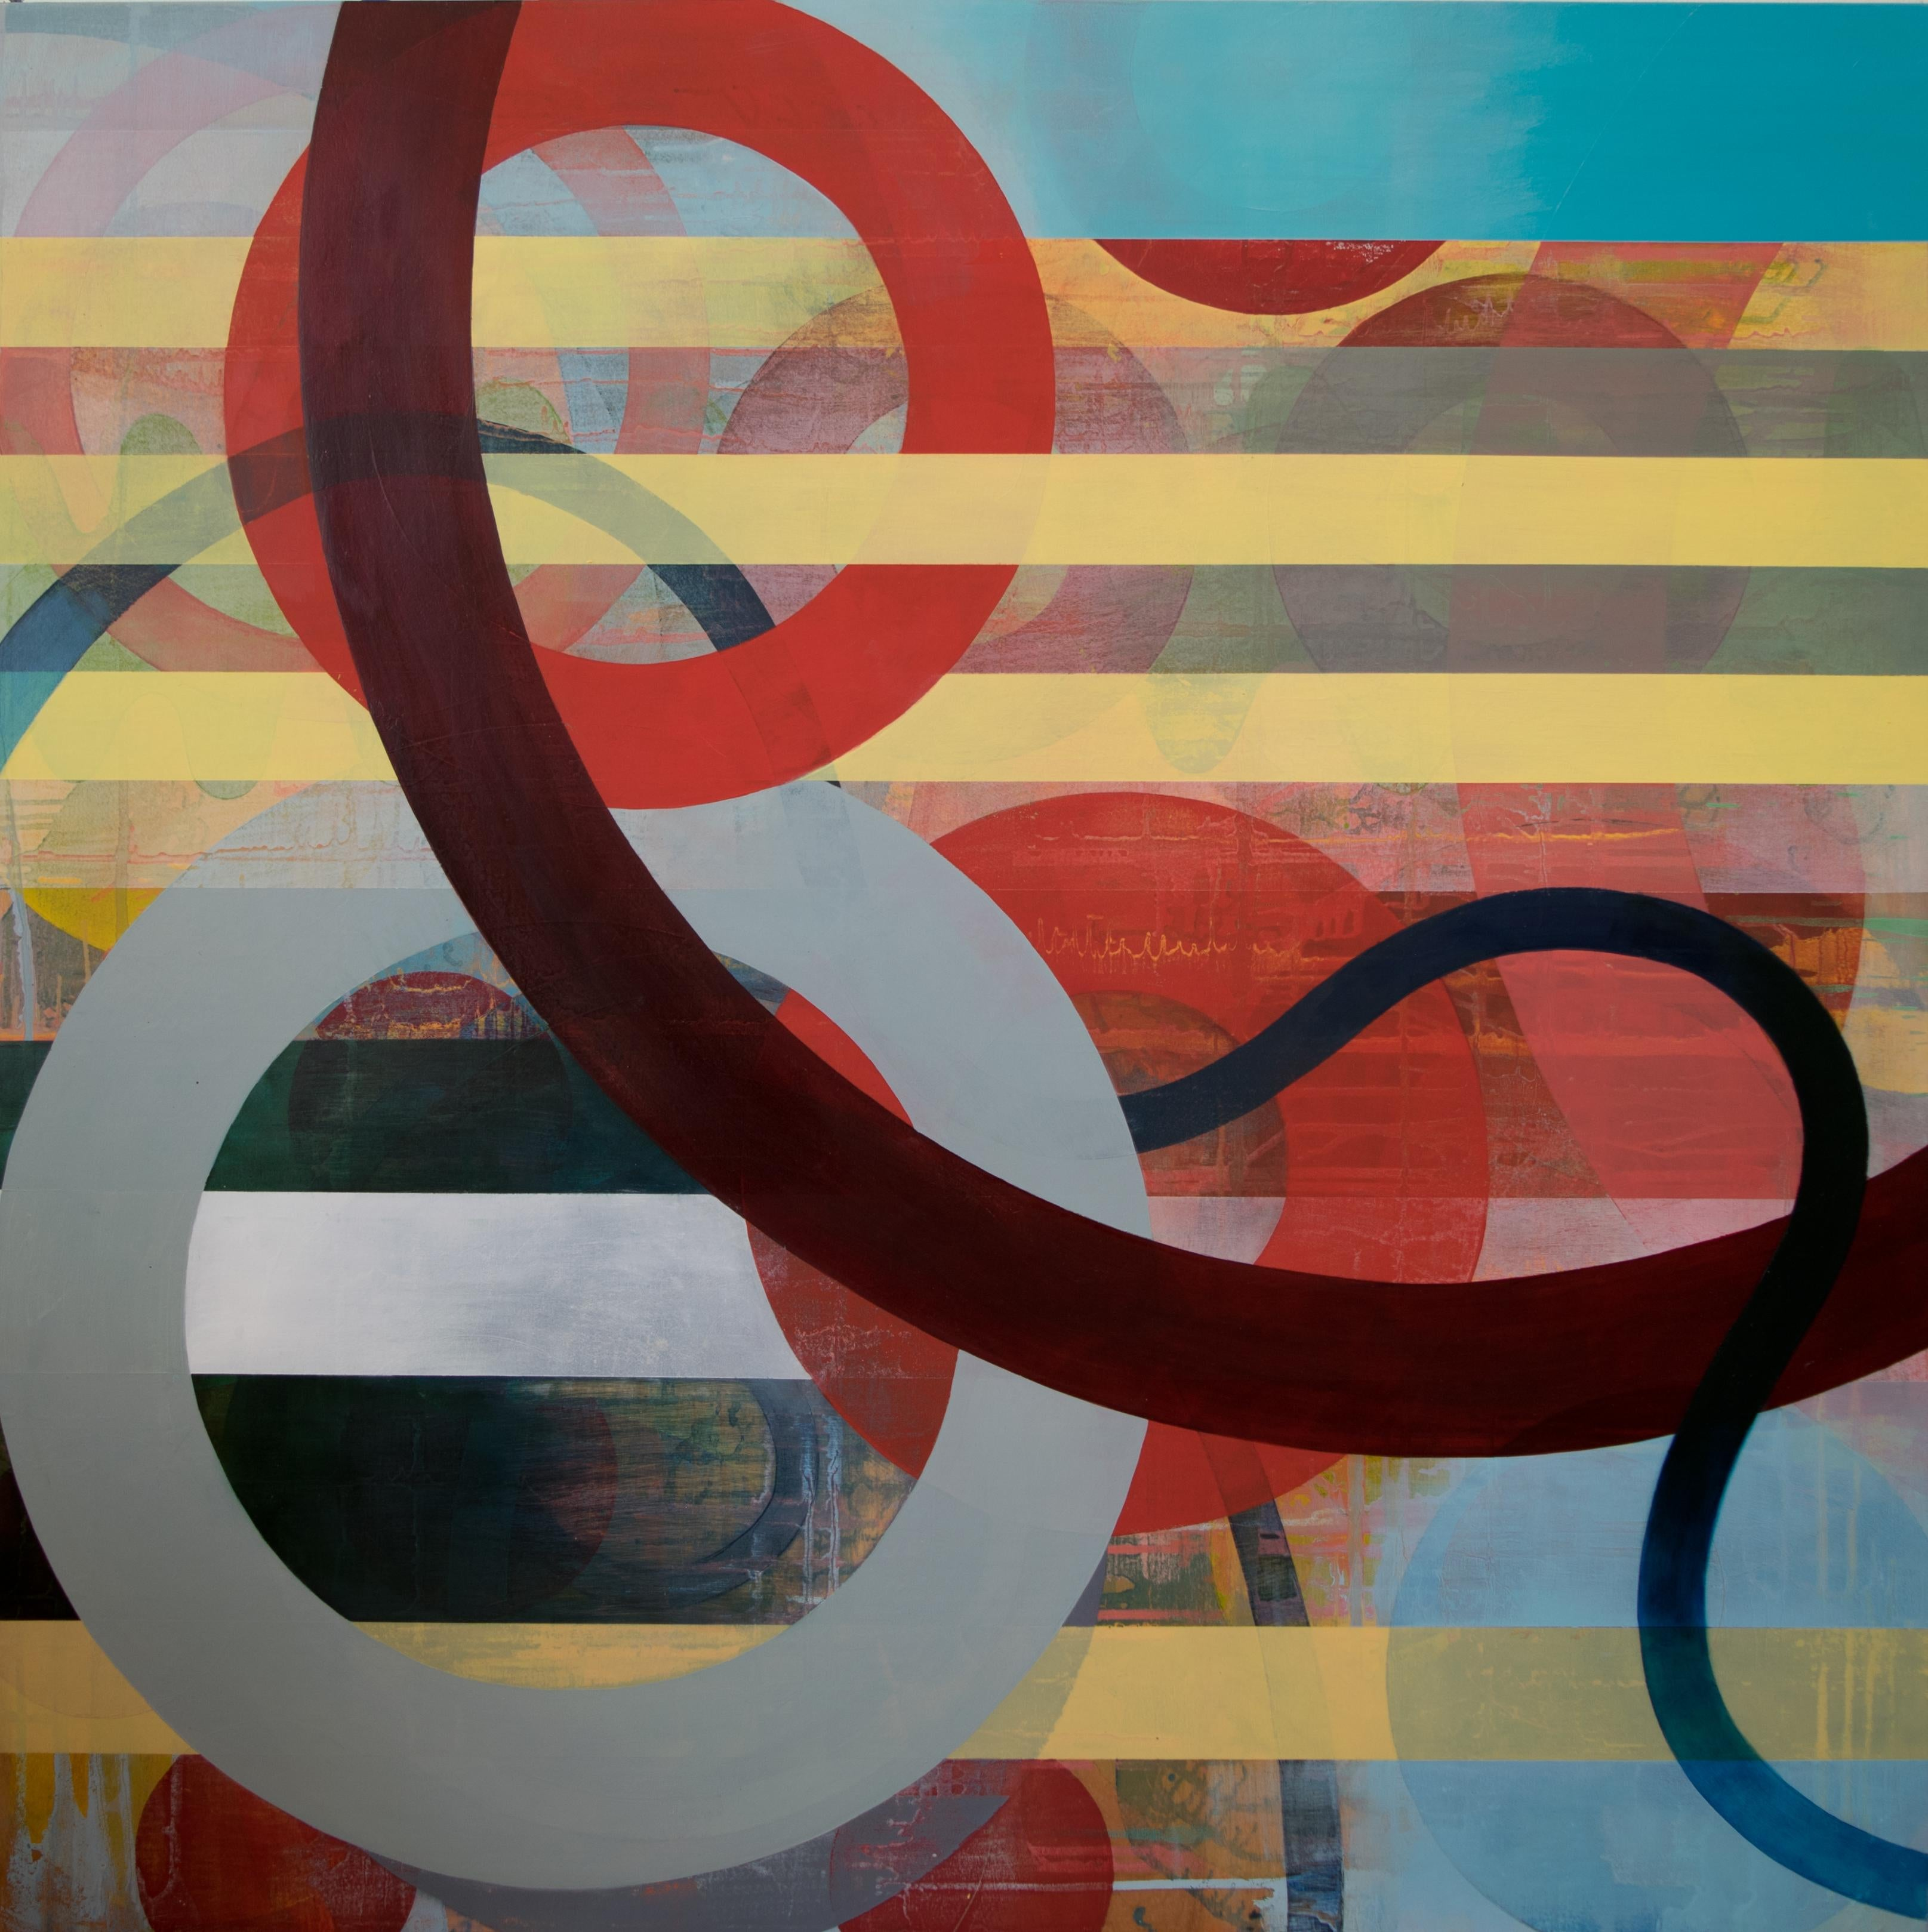 Square Contemporary Geometric Abstract Oil Painting by Linda Schmidt - Seek